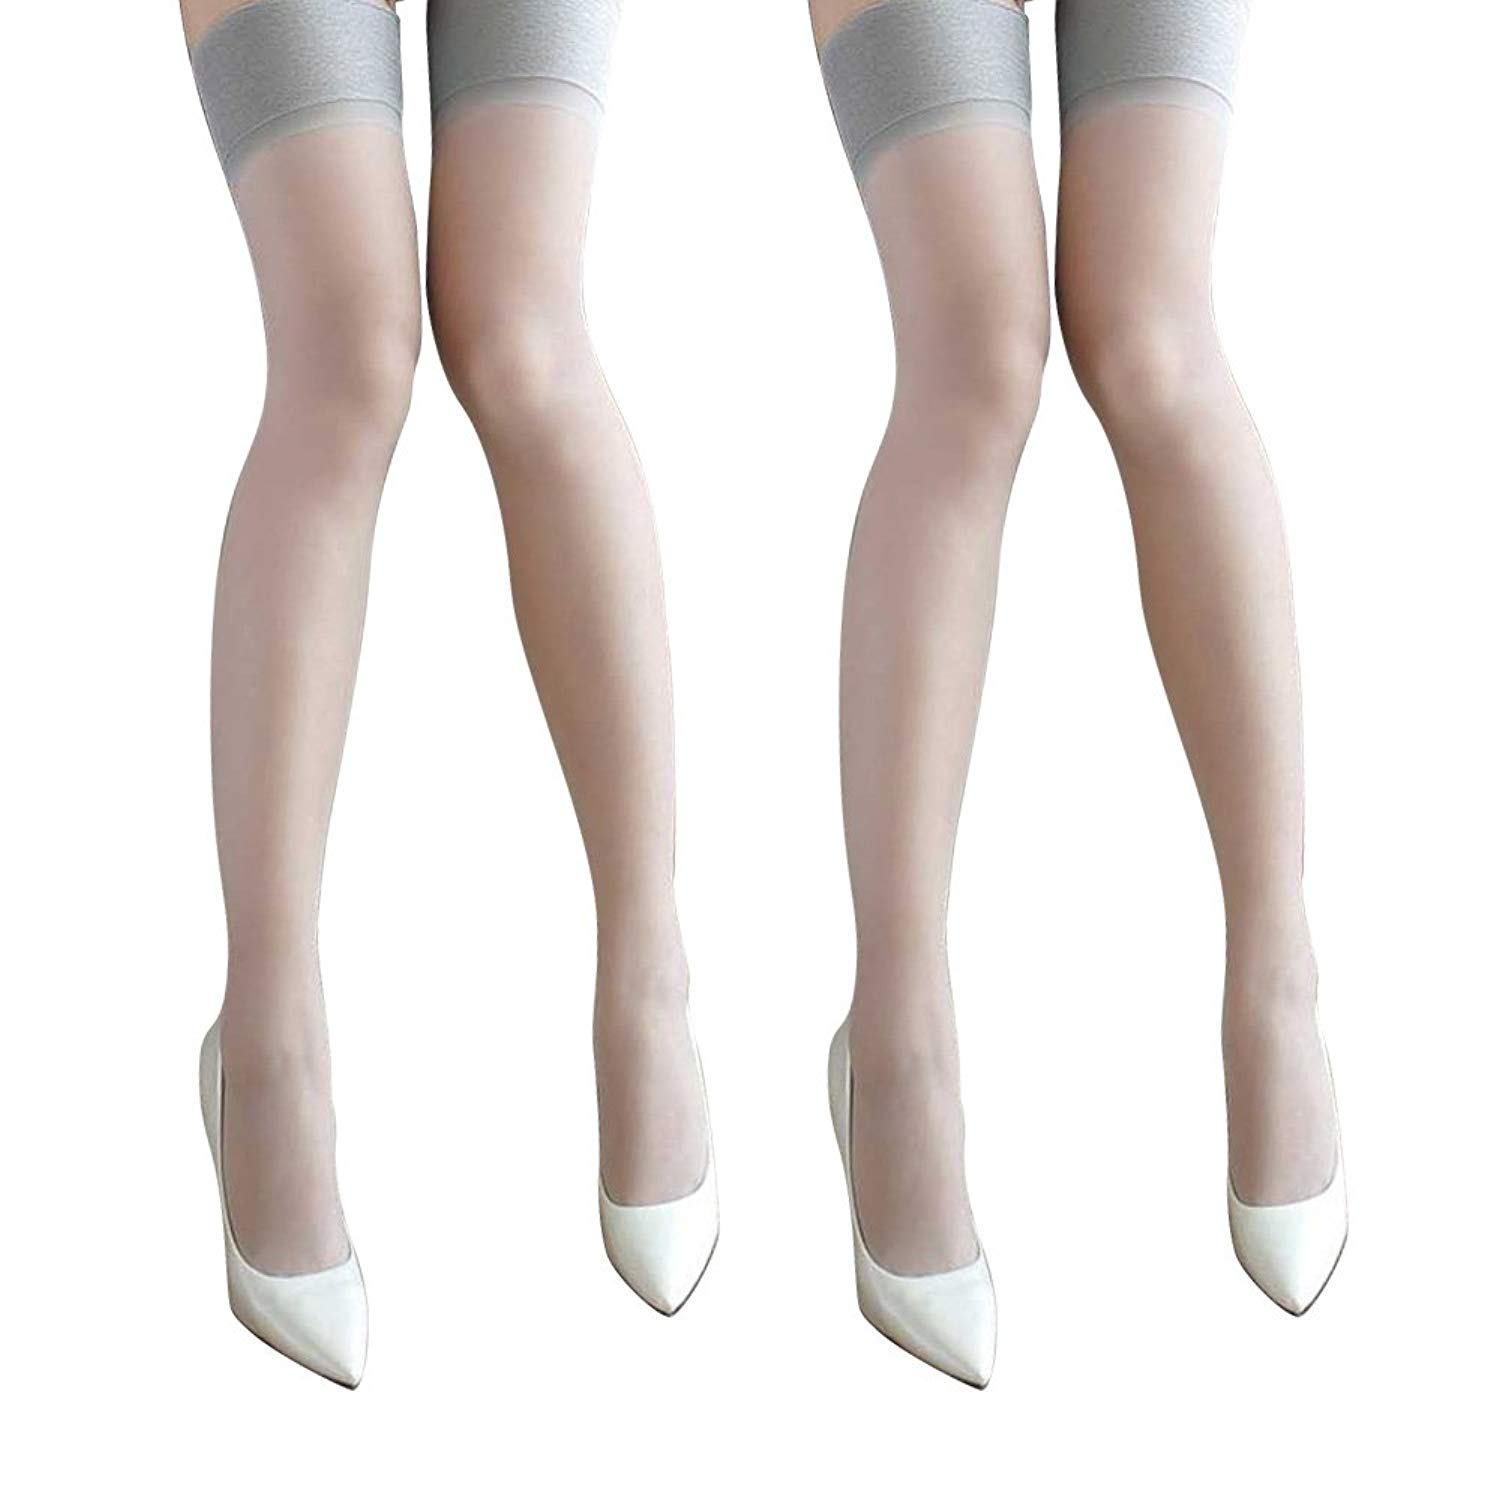 cf939e579 Get Quotations · Women s Glossy Hold Ups Stockings Thigh Highs Wide Border